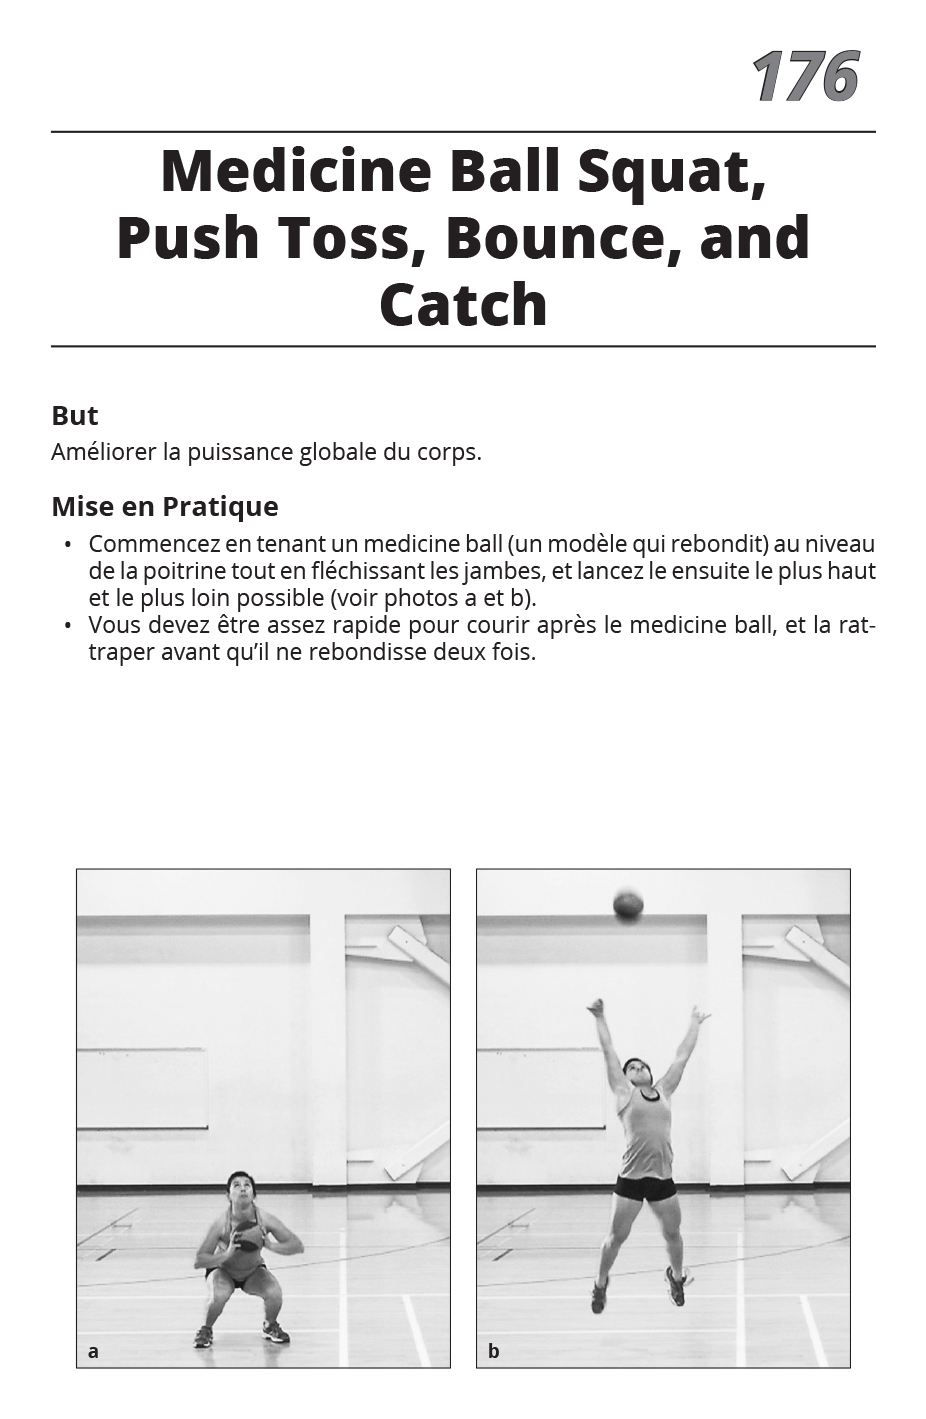 Medicine Ball Squat, Push Toss, Bounce, and Catch